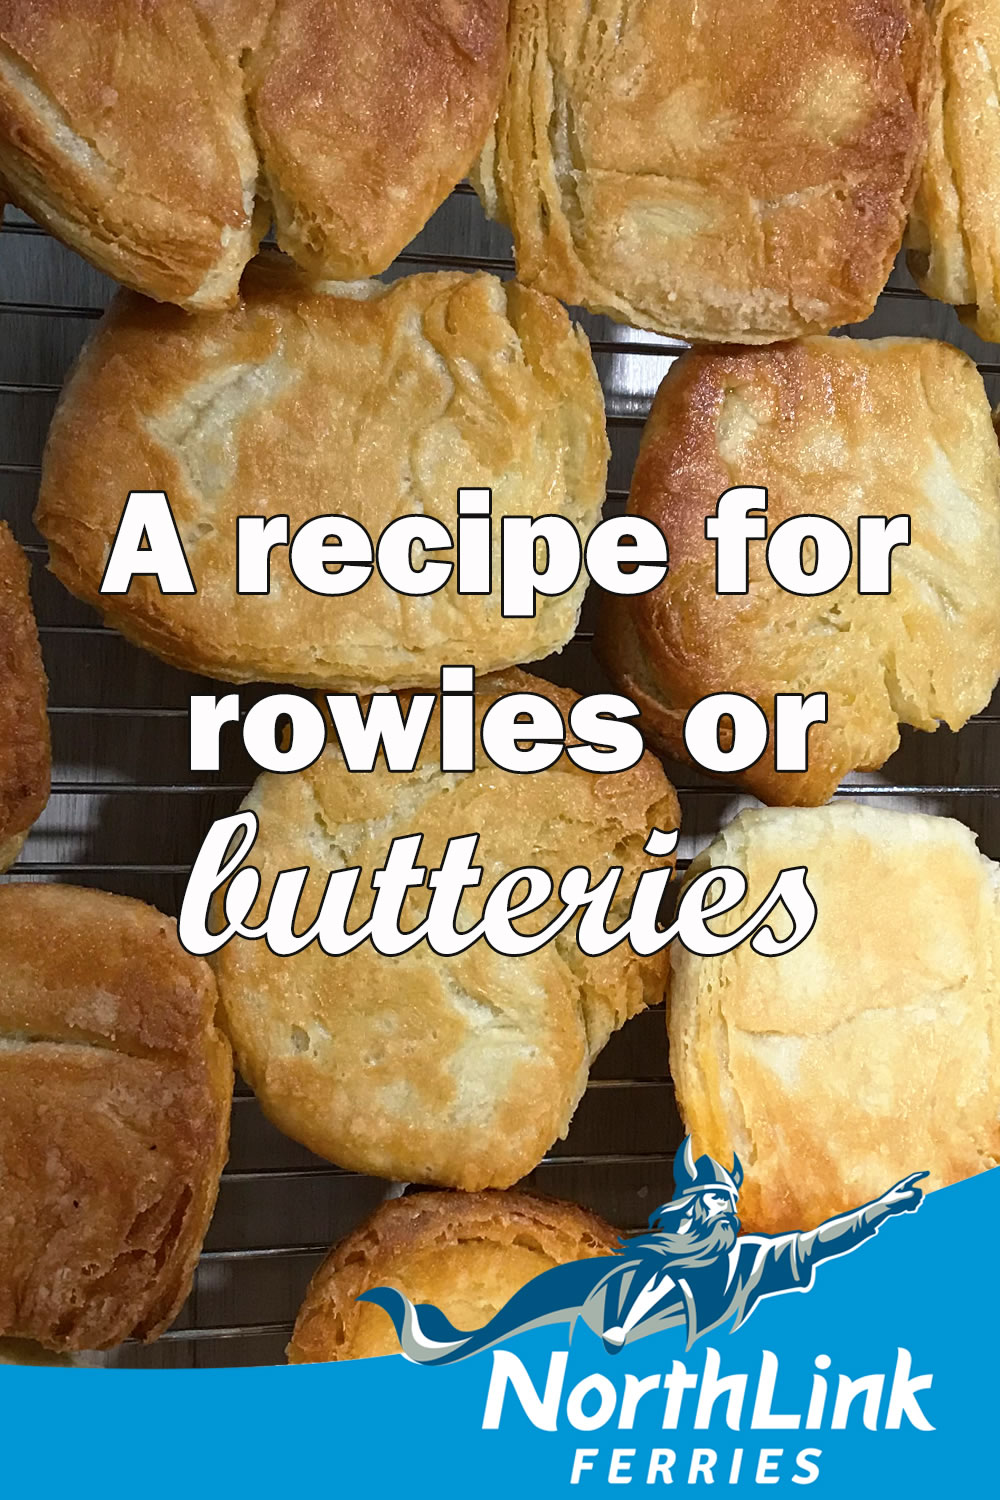 A recipe for rowies or butteries